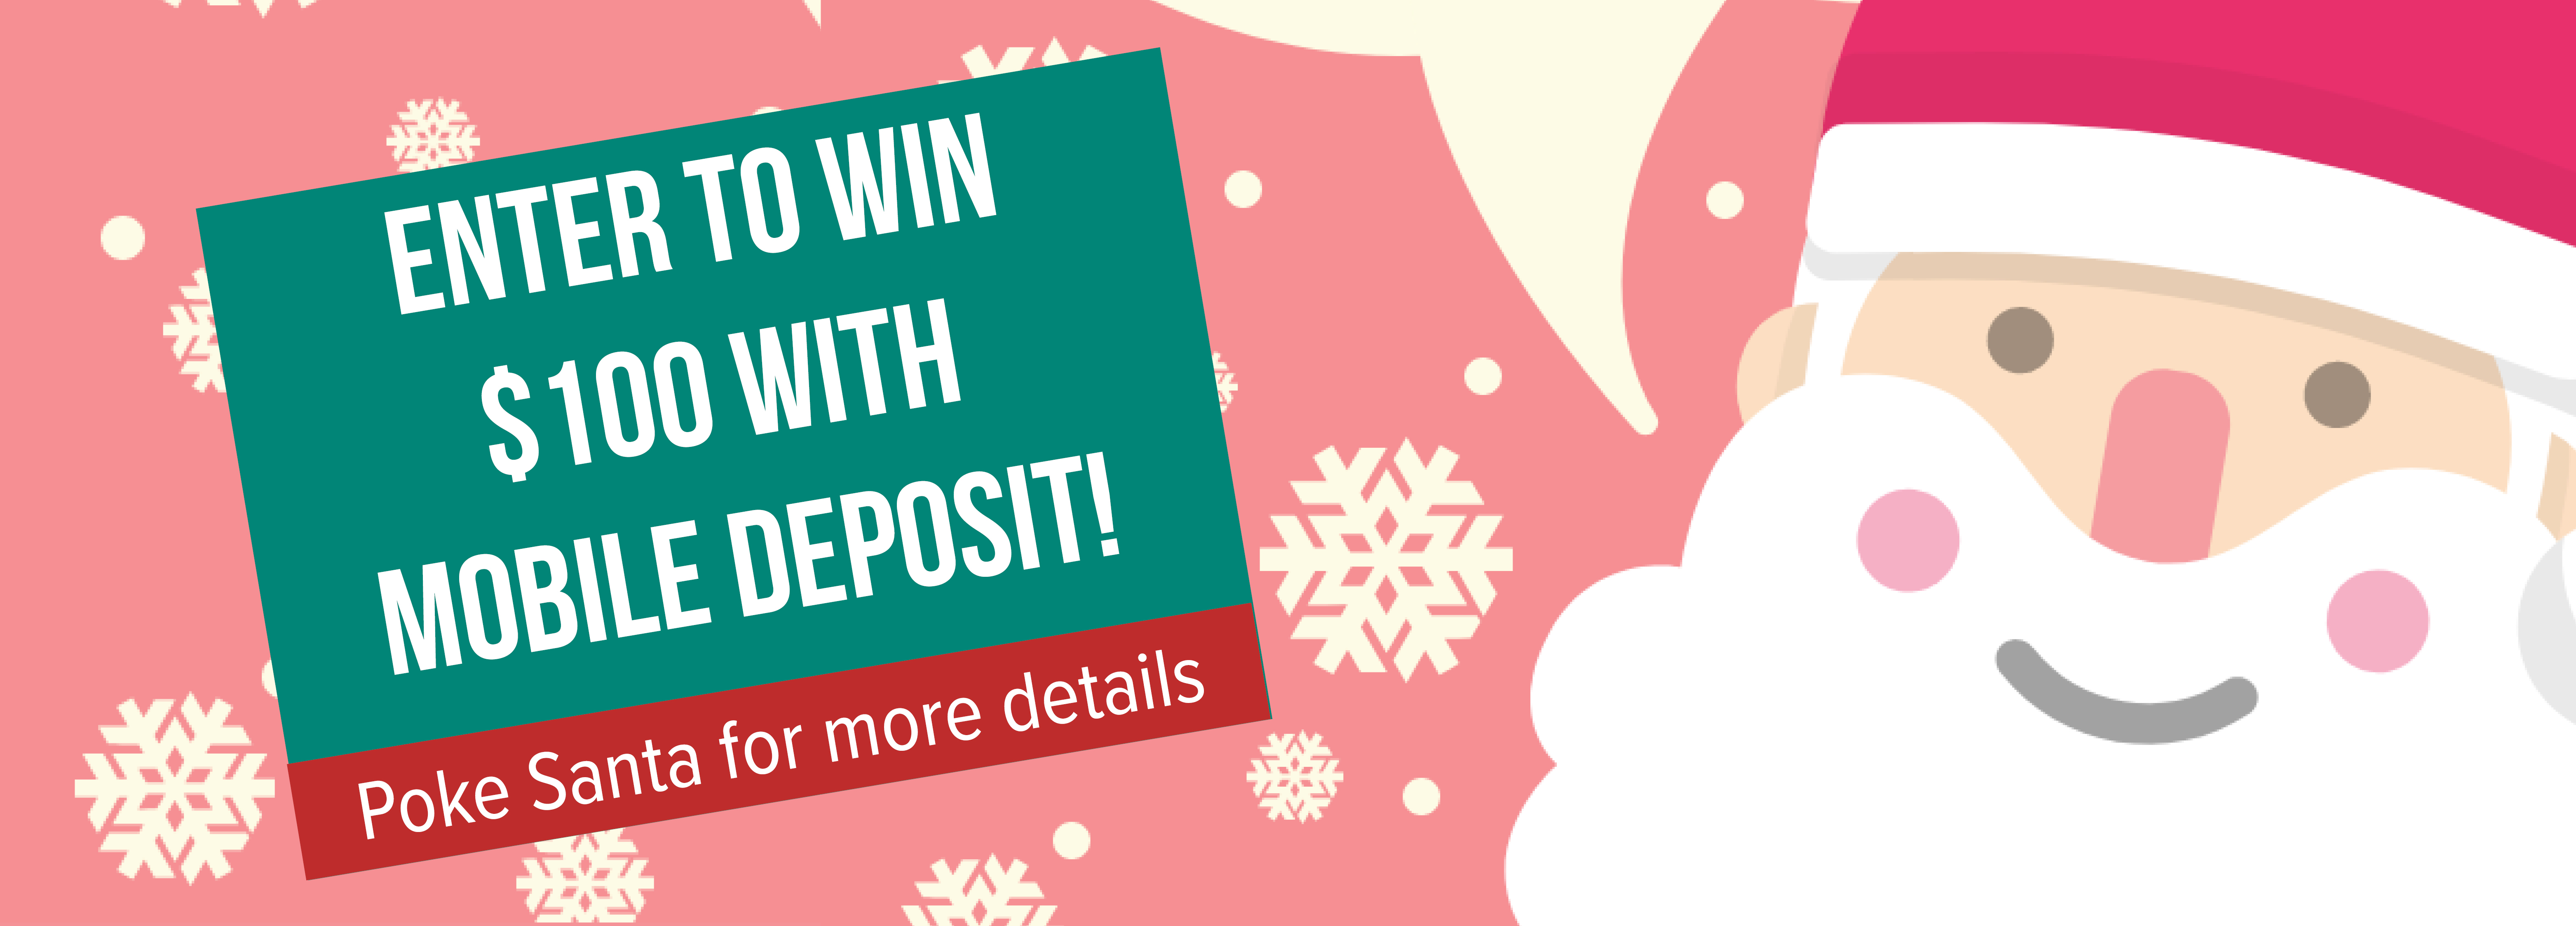 Enter to win $100 with mobile deposit